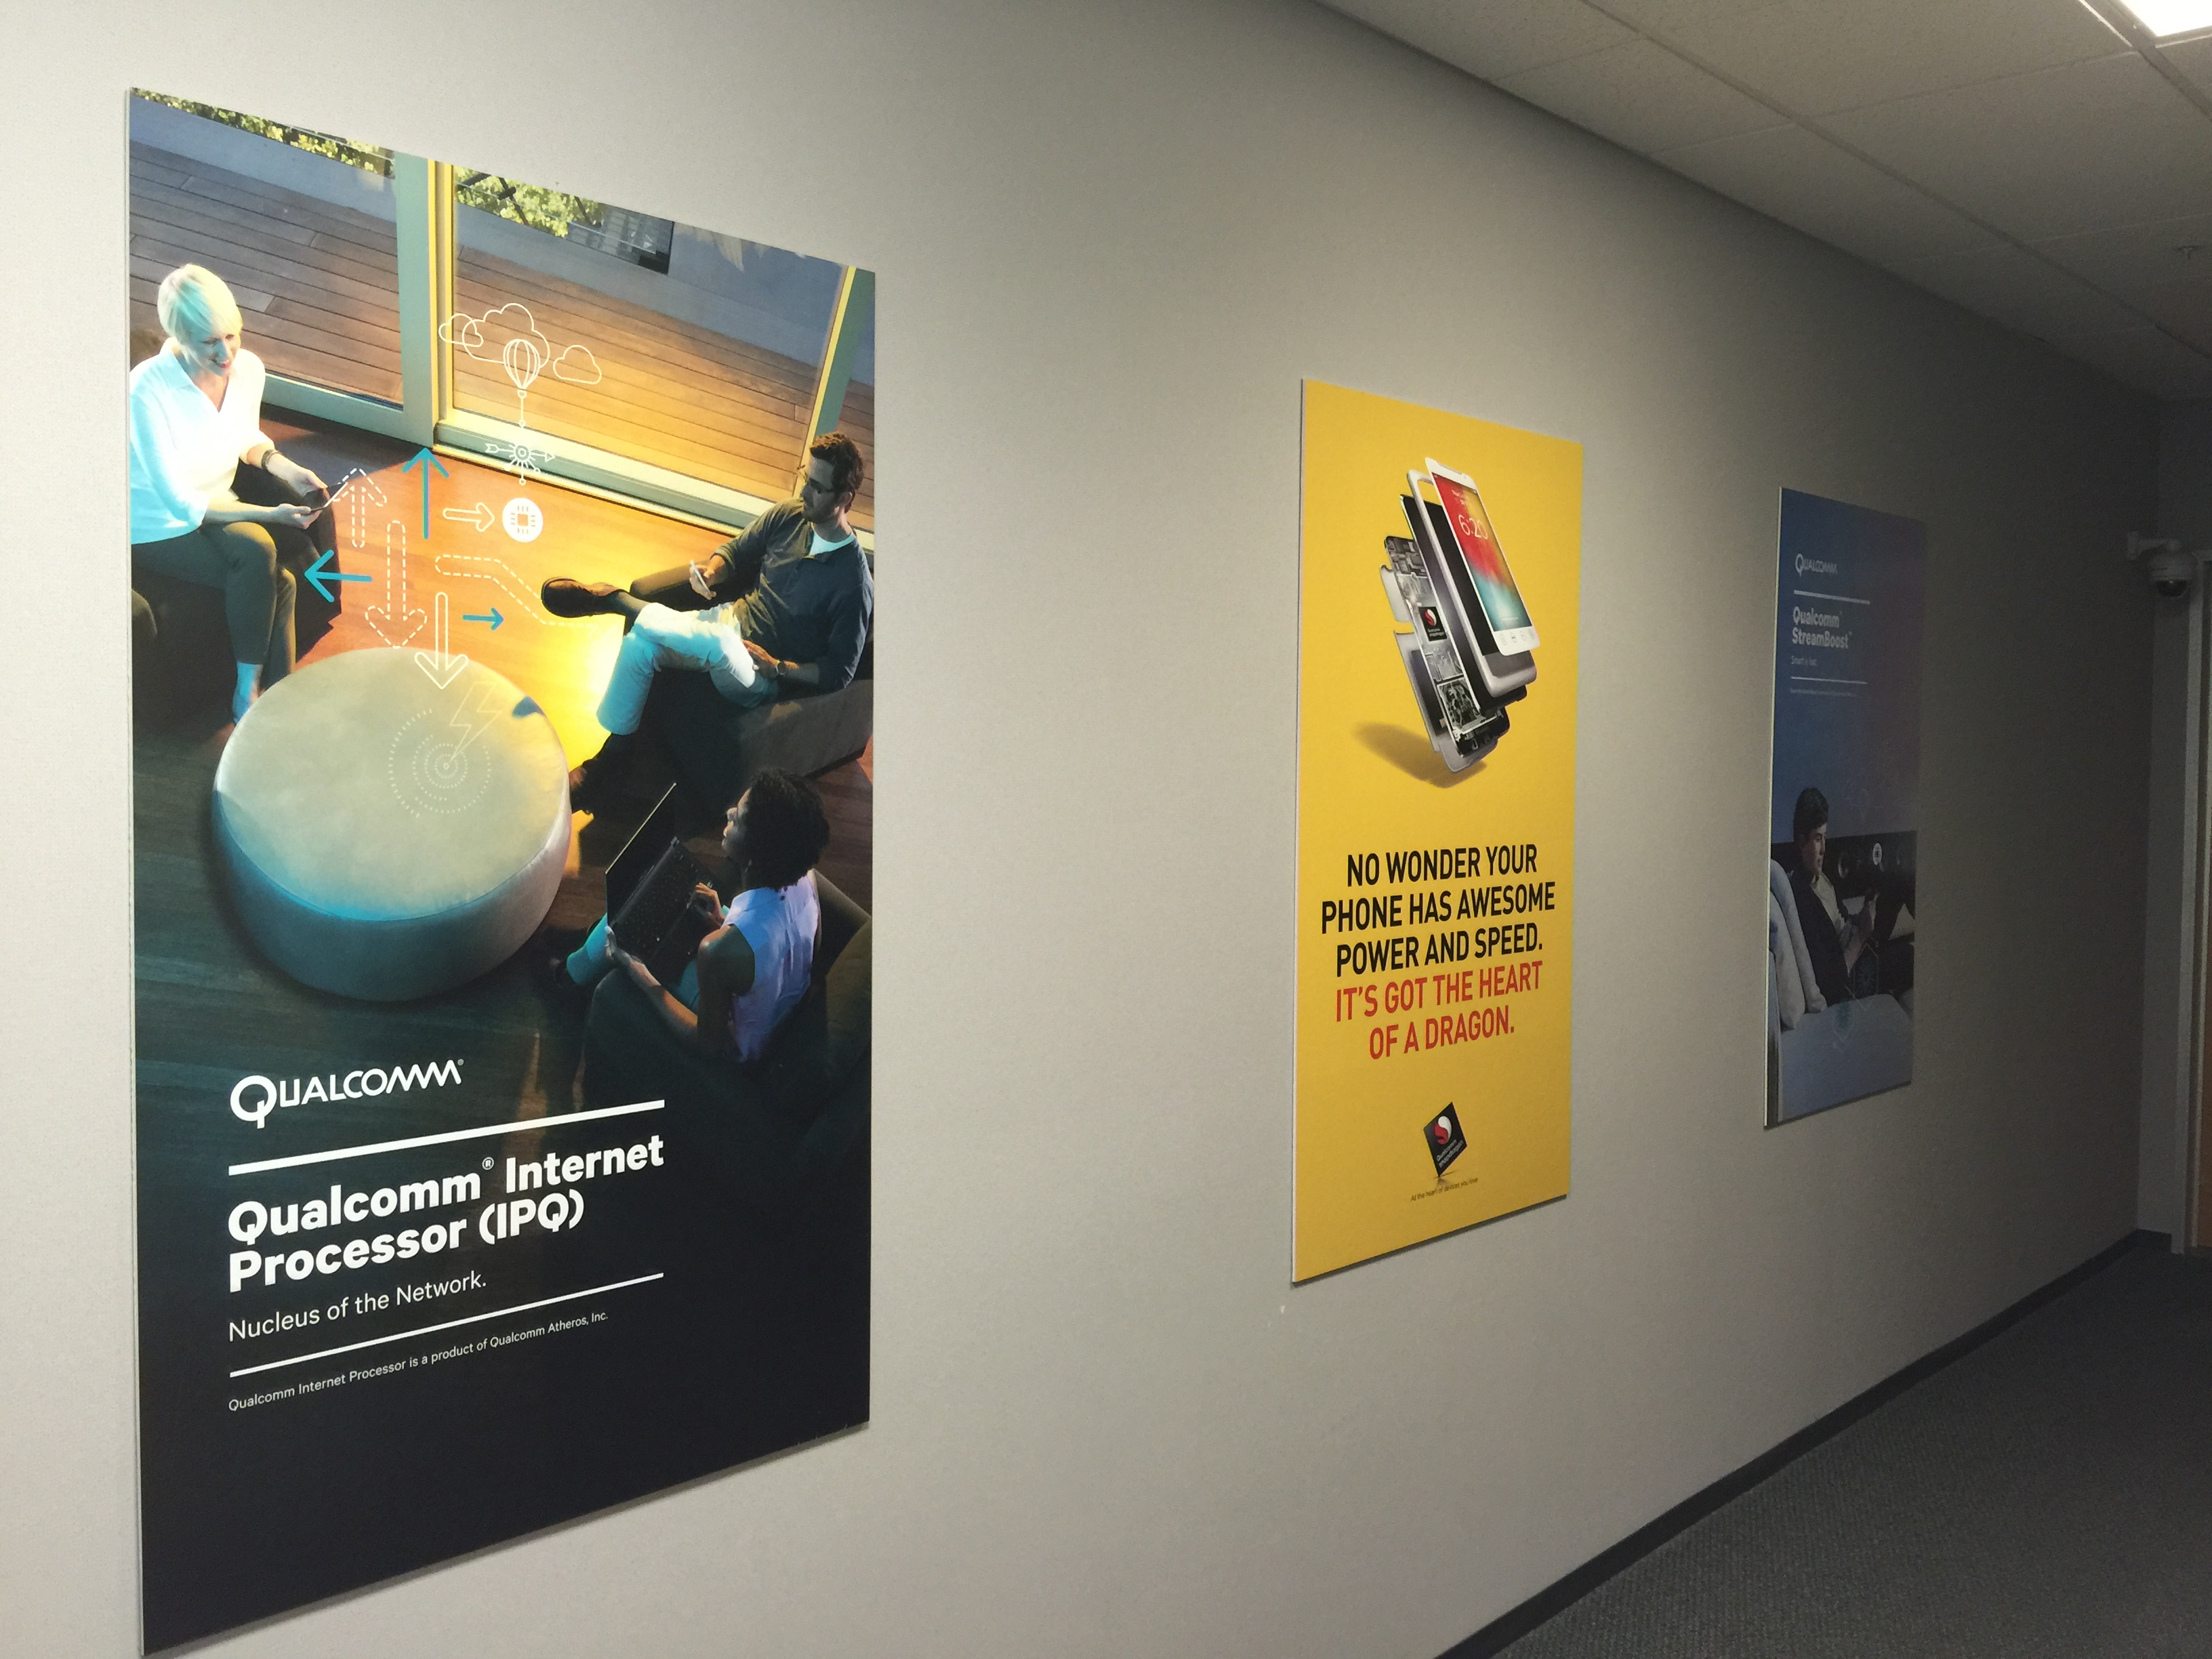 Laminated project posters in irvine ca for qualcomm inc